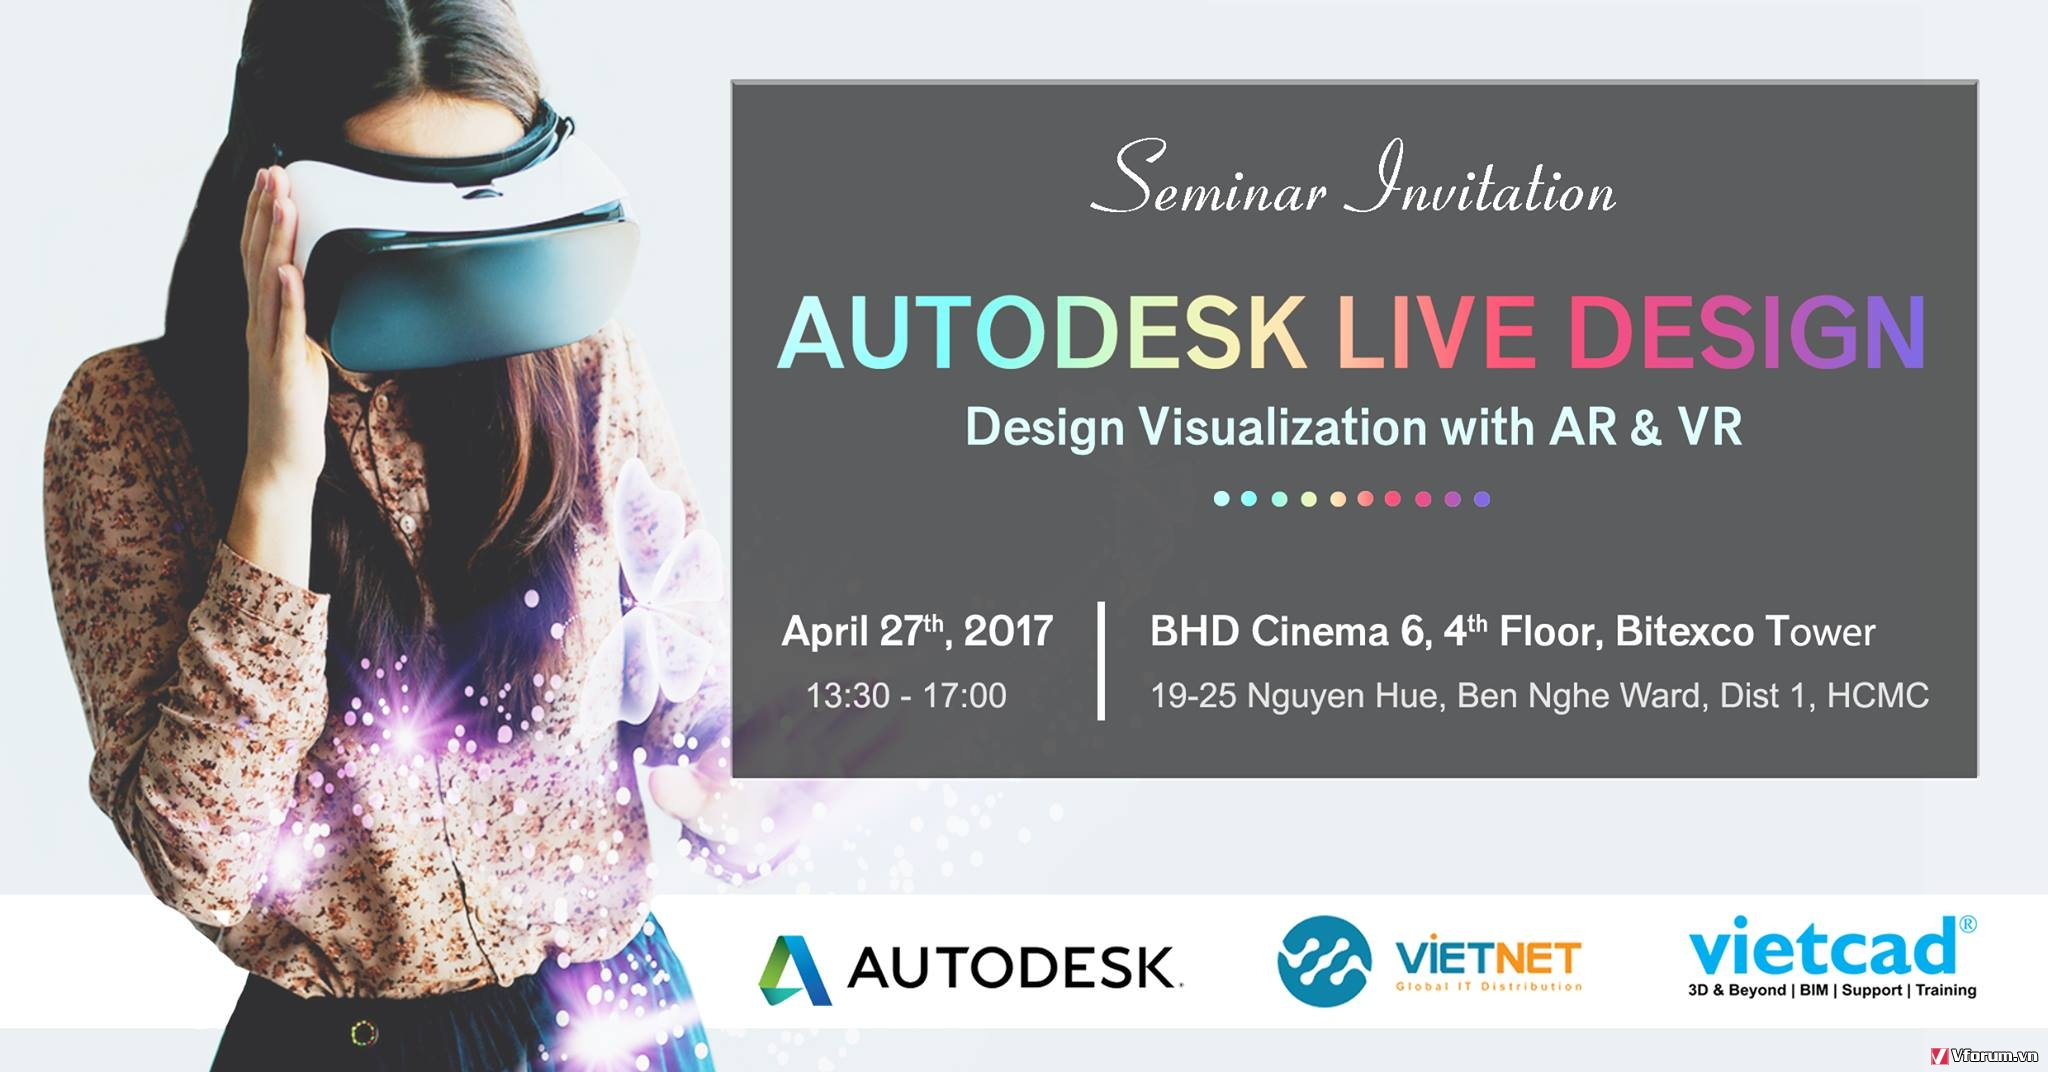 [Sự kiện] Autodesk LIVE Design - Design Visualization with AR and VR Ze8myy